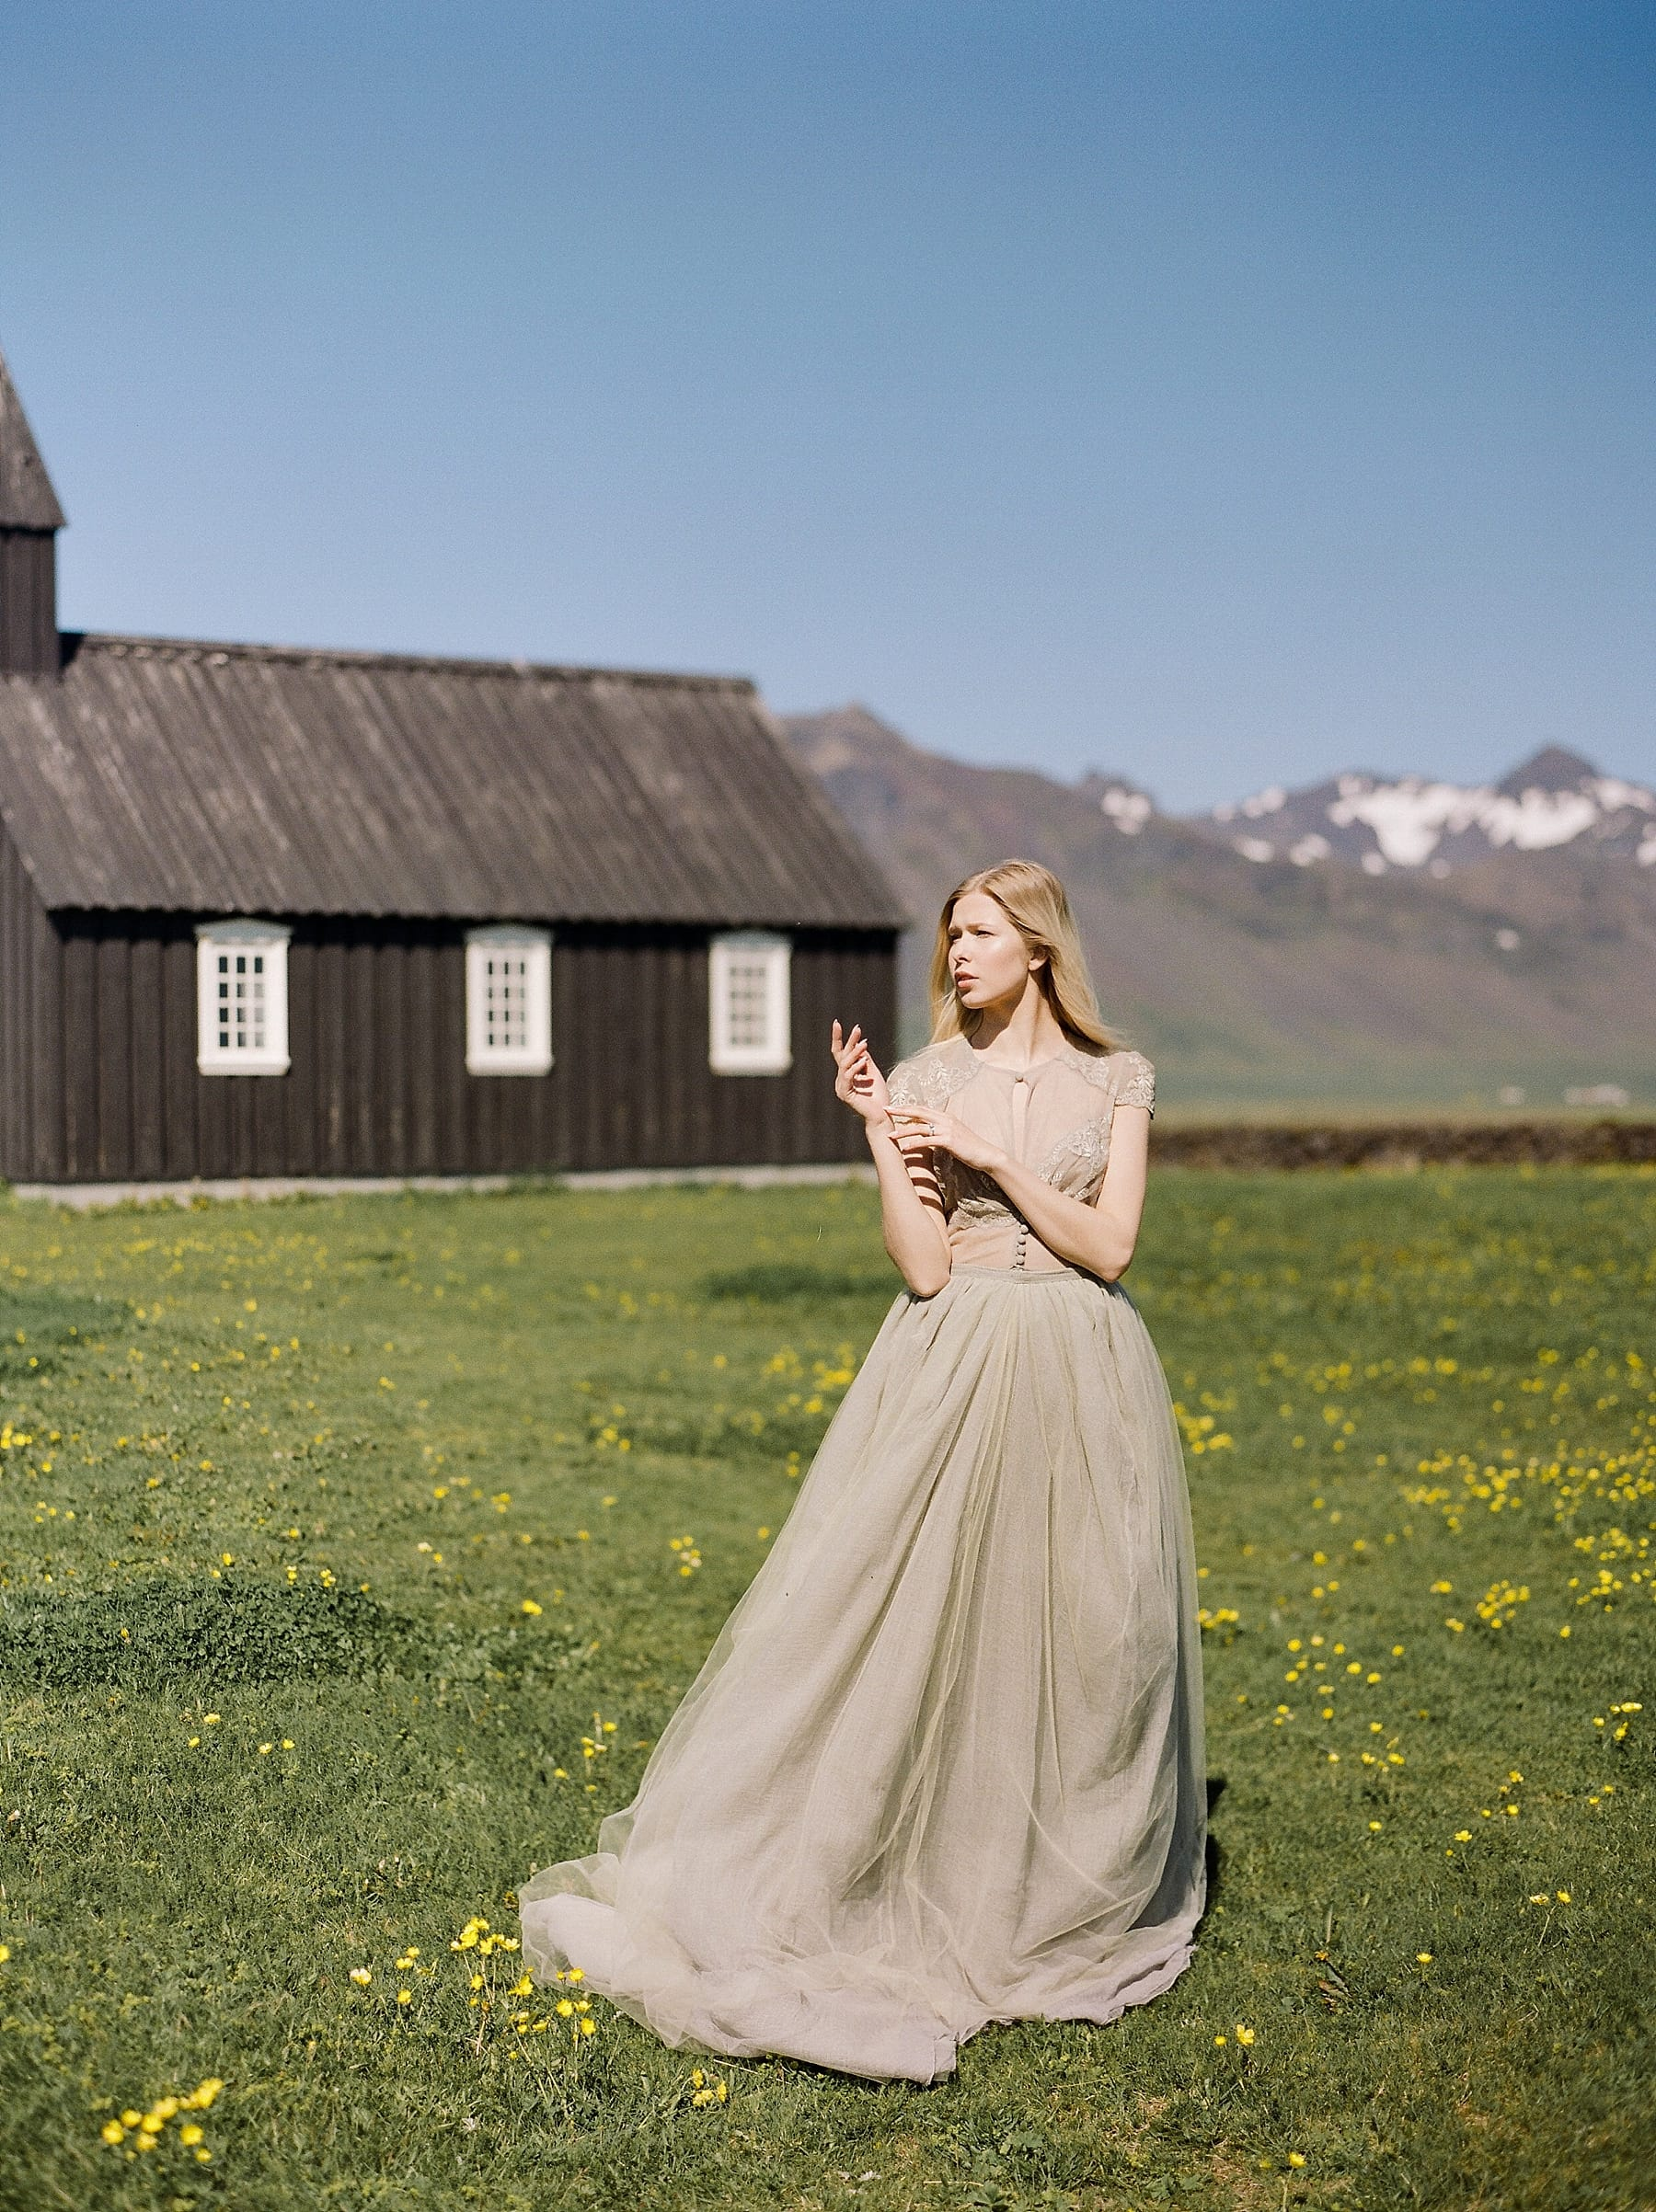 StarlingandSage_Iceland_Wedding_38